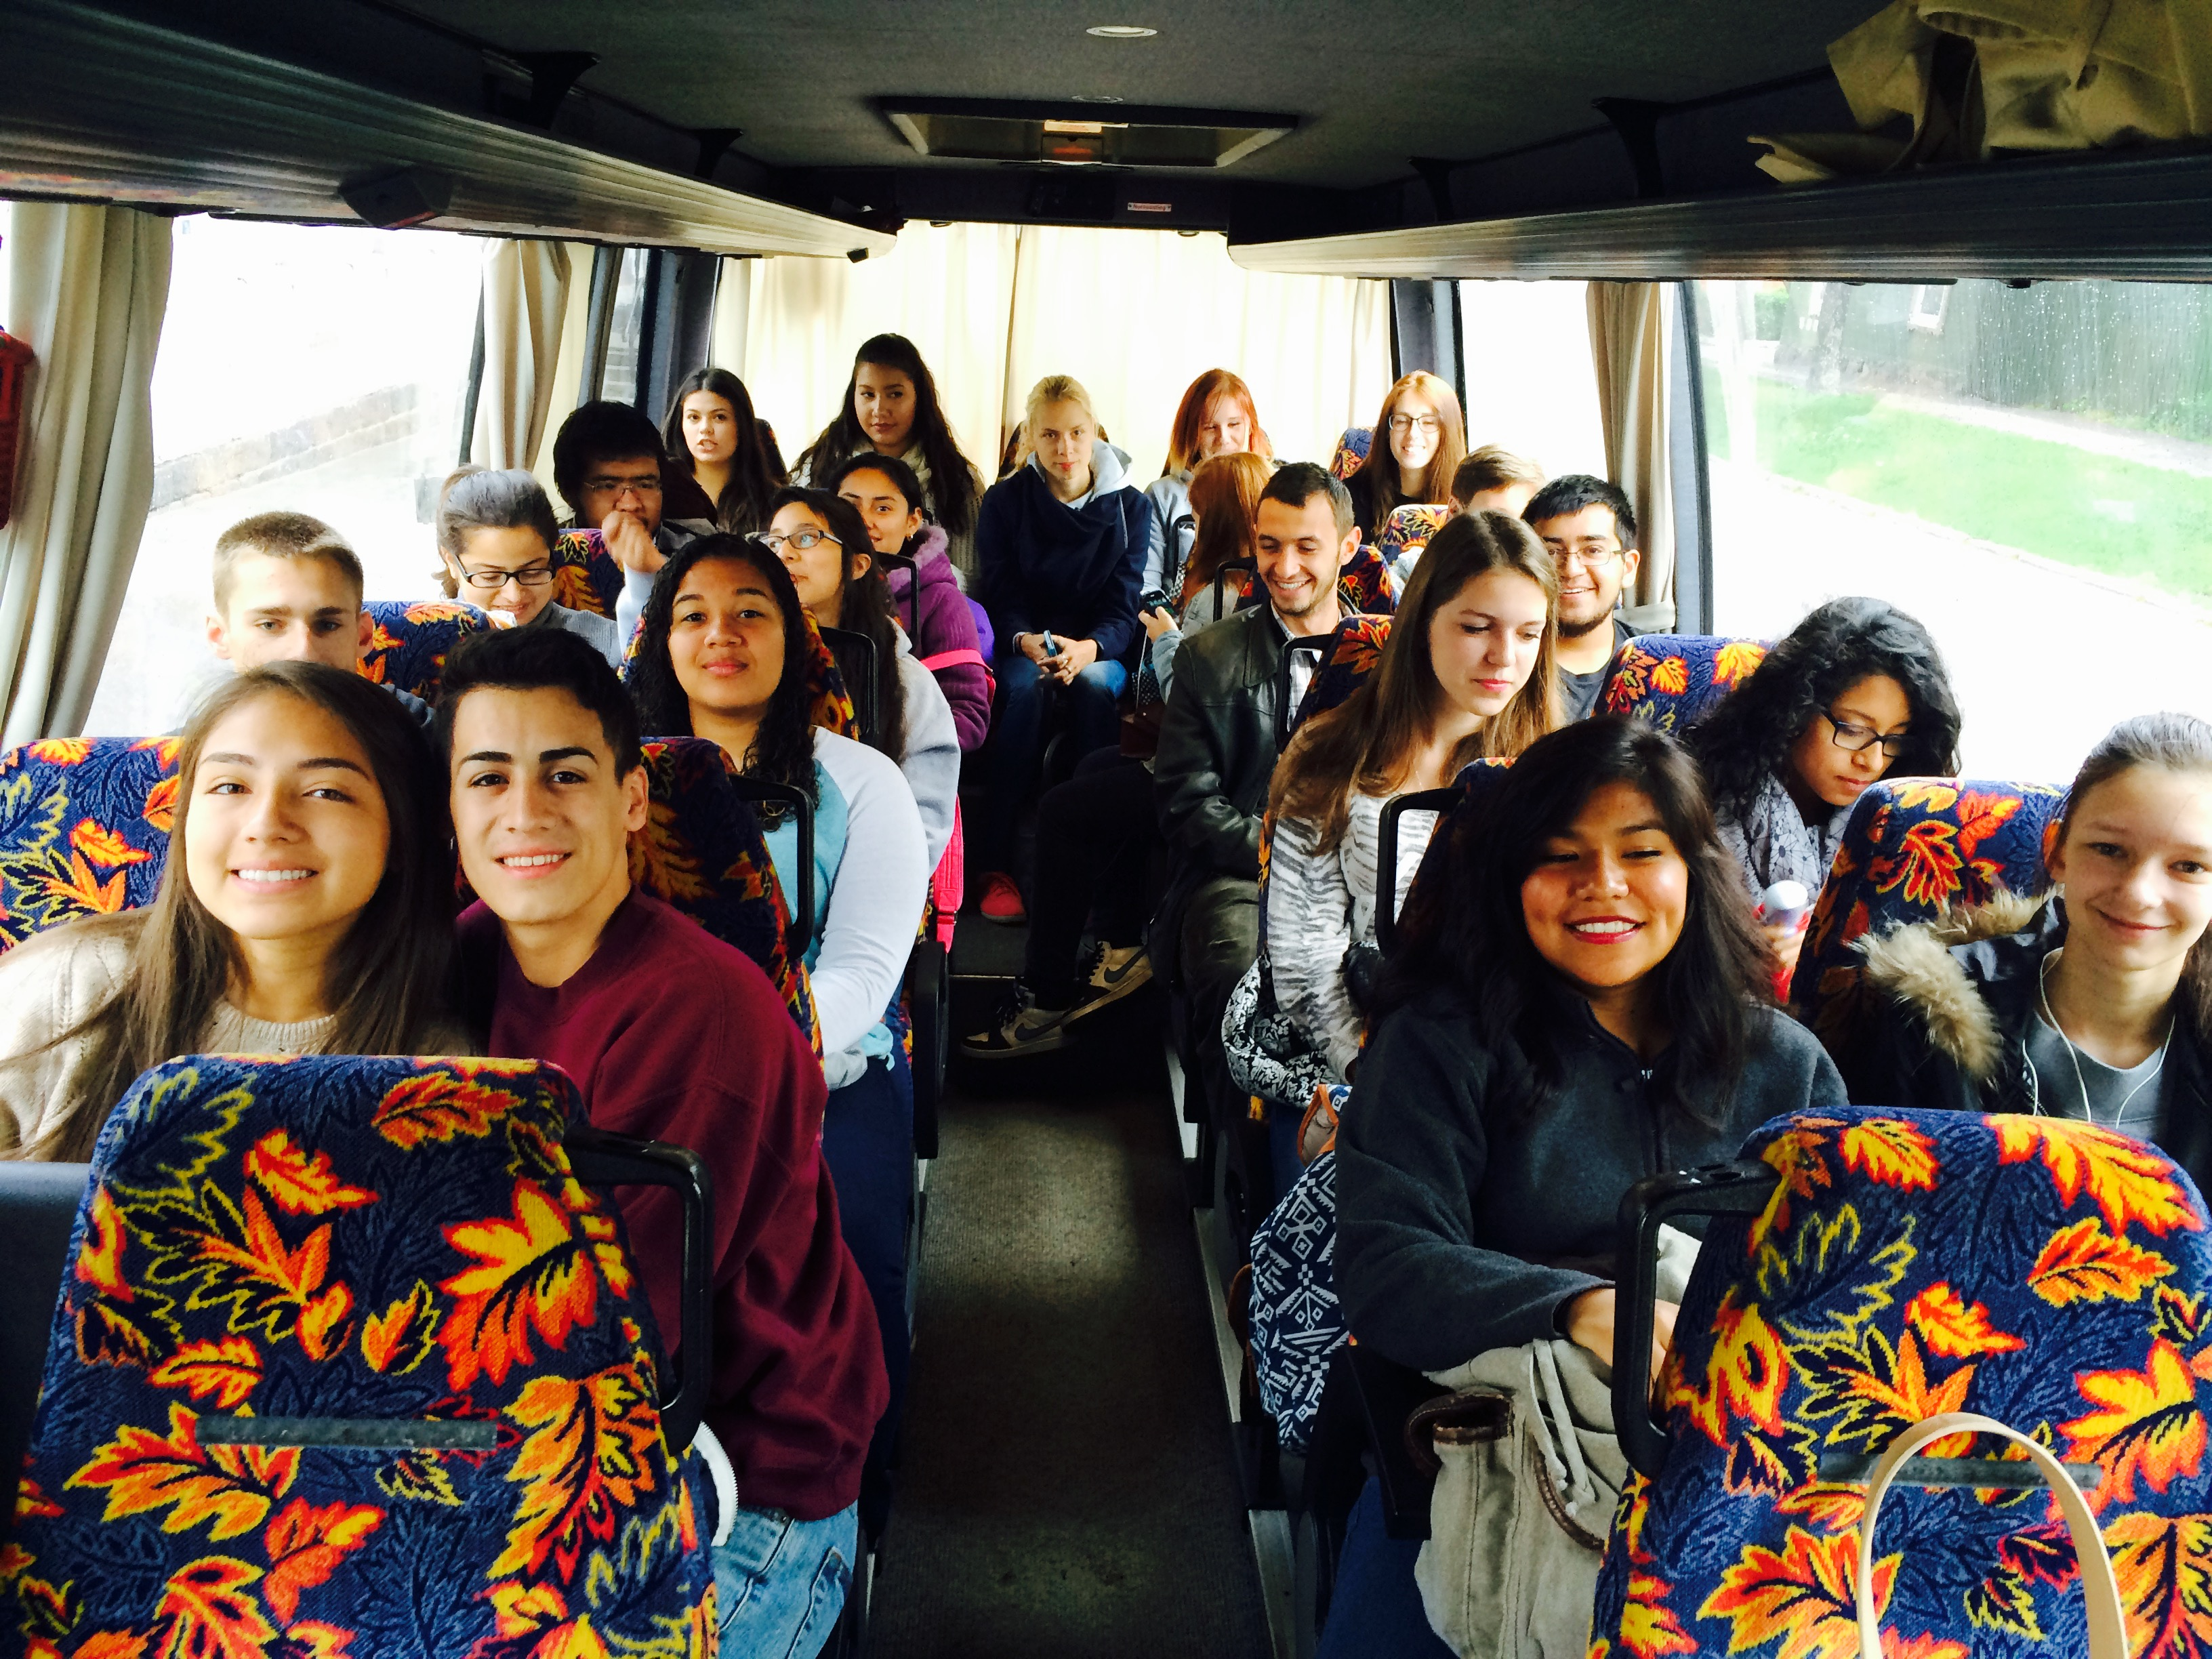 Students on the bus traveling to their numerous exciting locations.